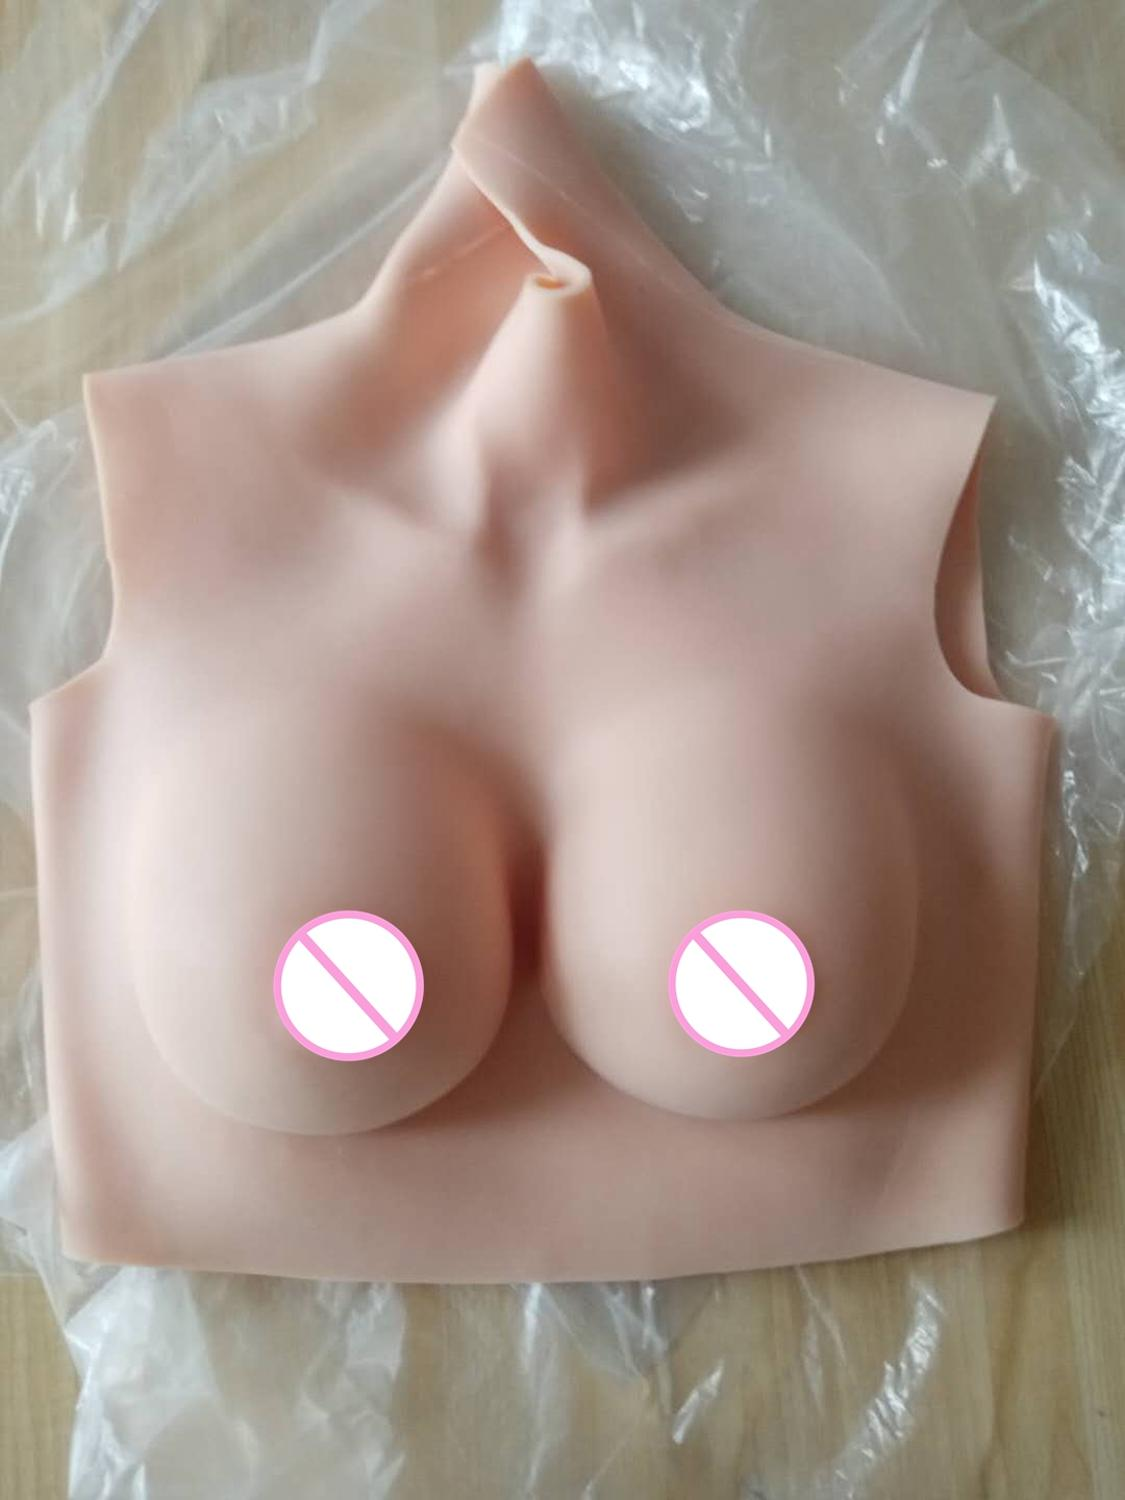 Crossdresser Shemale Transgender Drag Queen B CUP Short High Collar Neck Fake Artificial Boob Realistic Silicone Breast Forms 4G